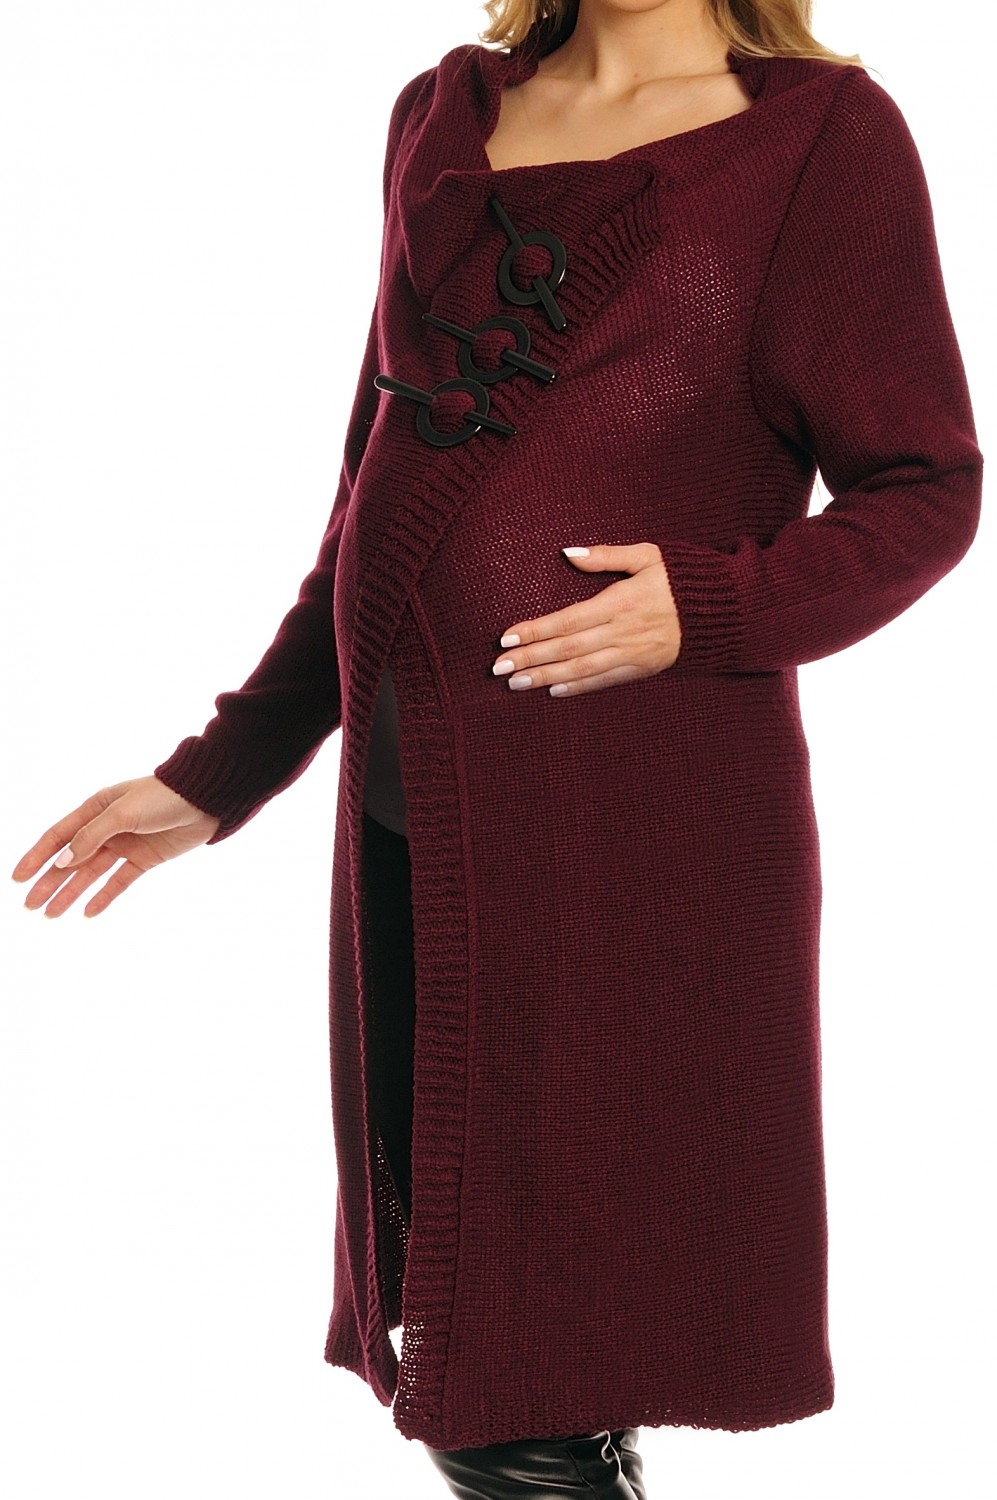 Zeta Ville Women's Maternity Knit Coat Cardigan Decorative Buttons - 106c